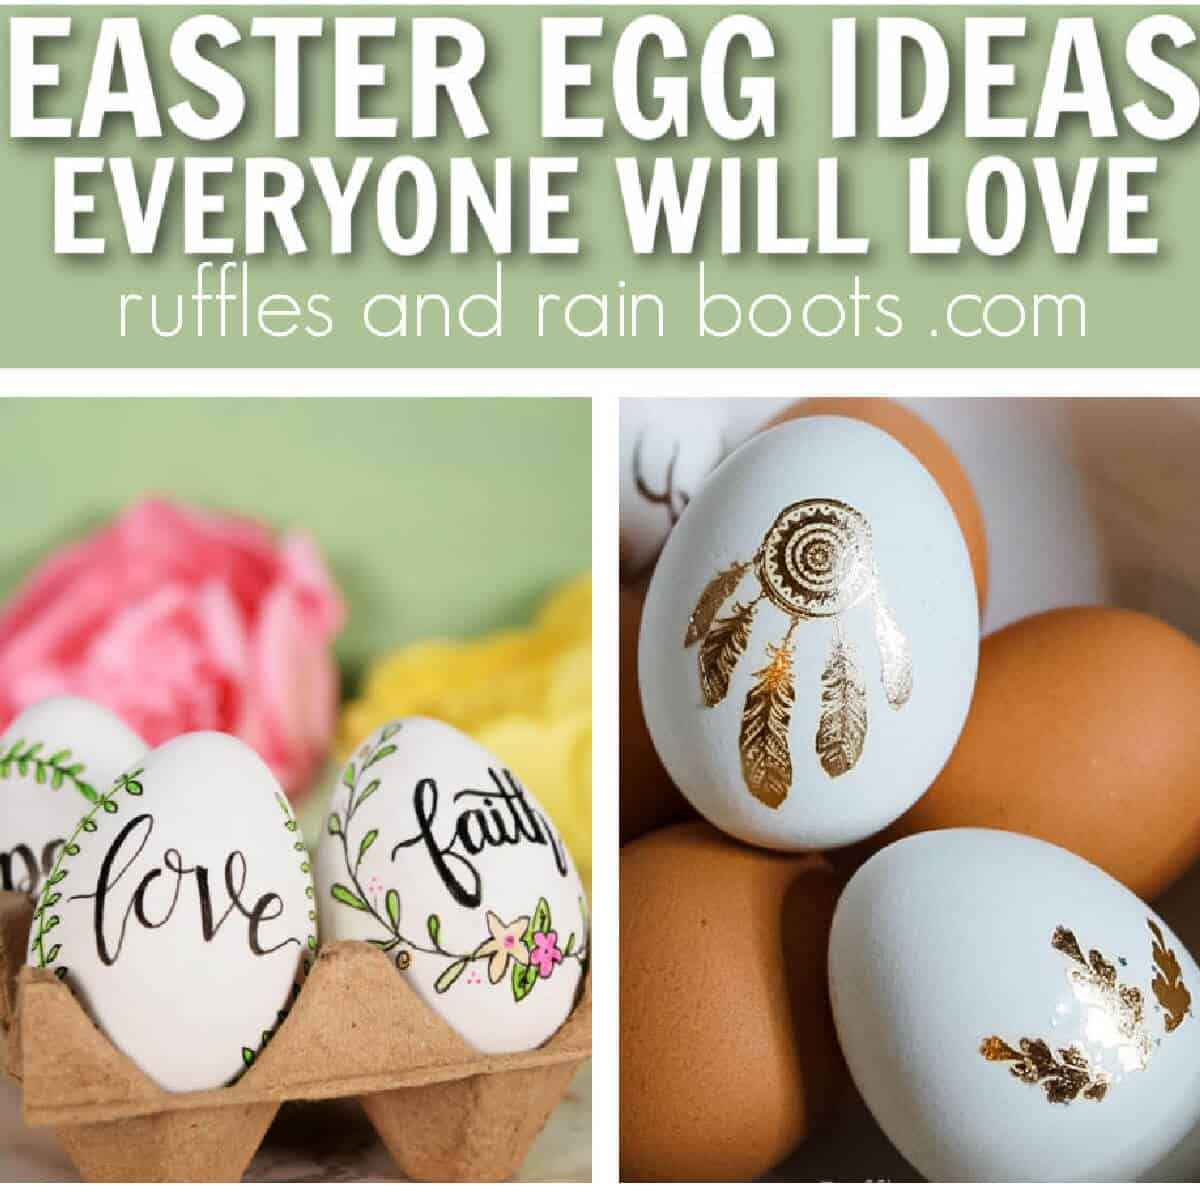 two image collage of hand lettered eggs and Easter egg made with tattoo with text easter egg ideas